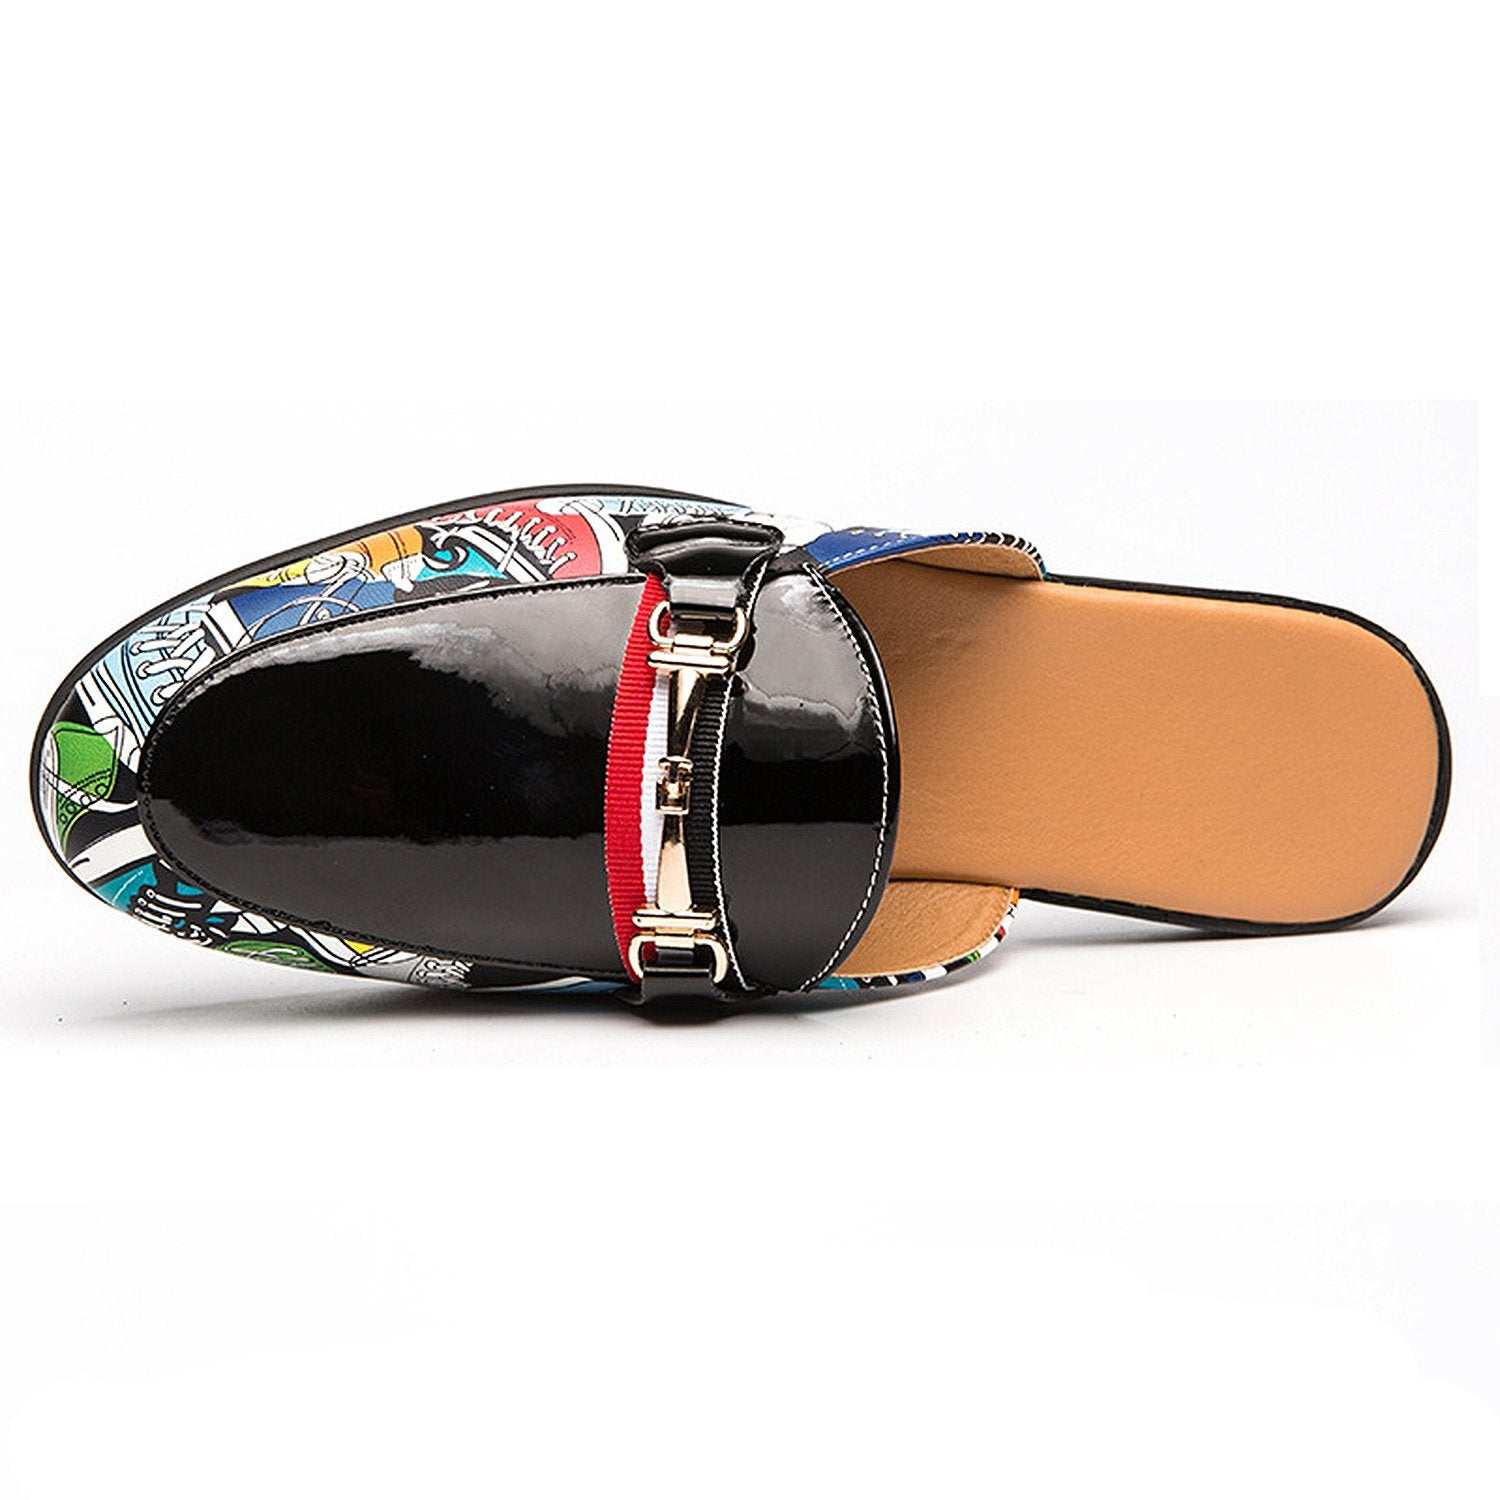 Men's Patent Leather Slippers Mules